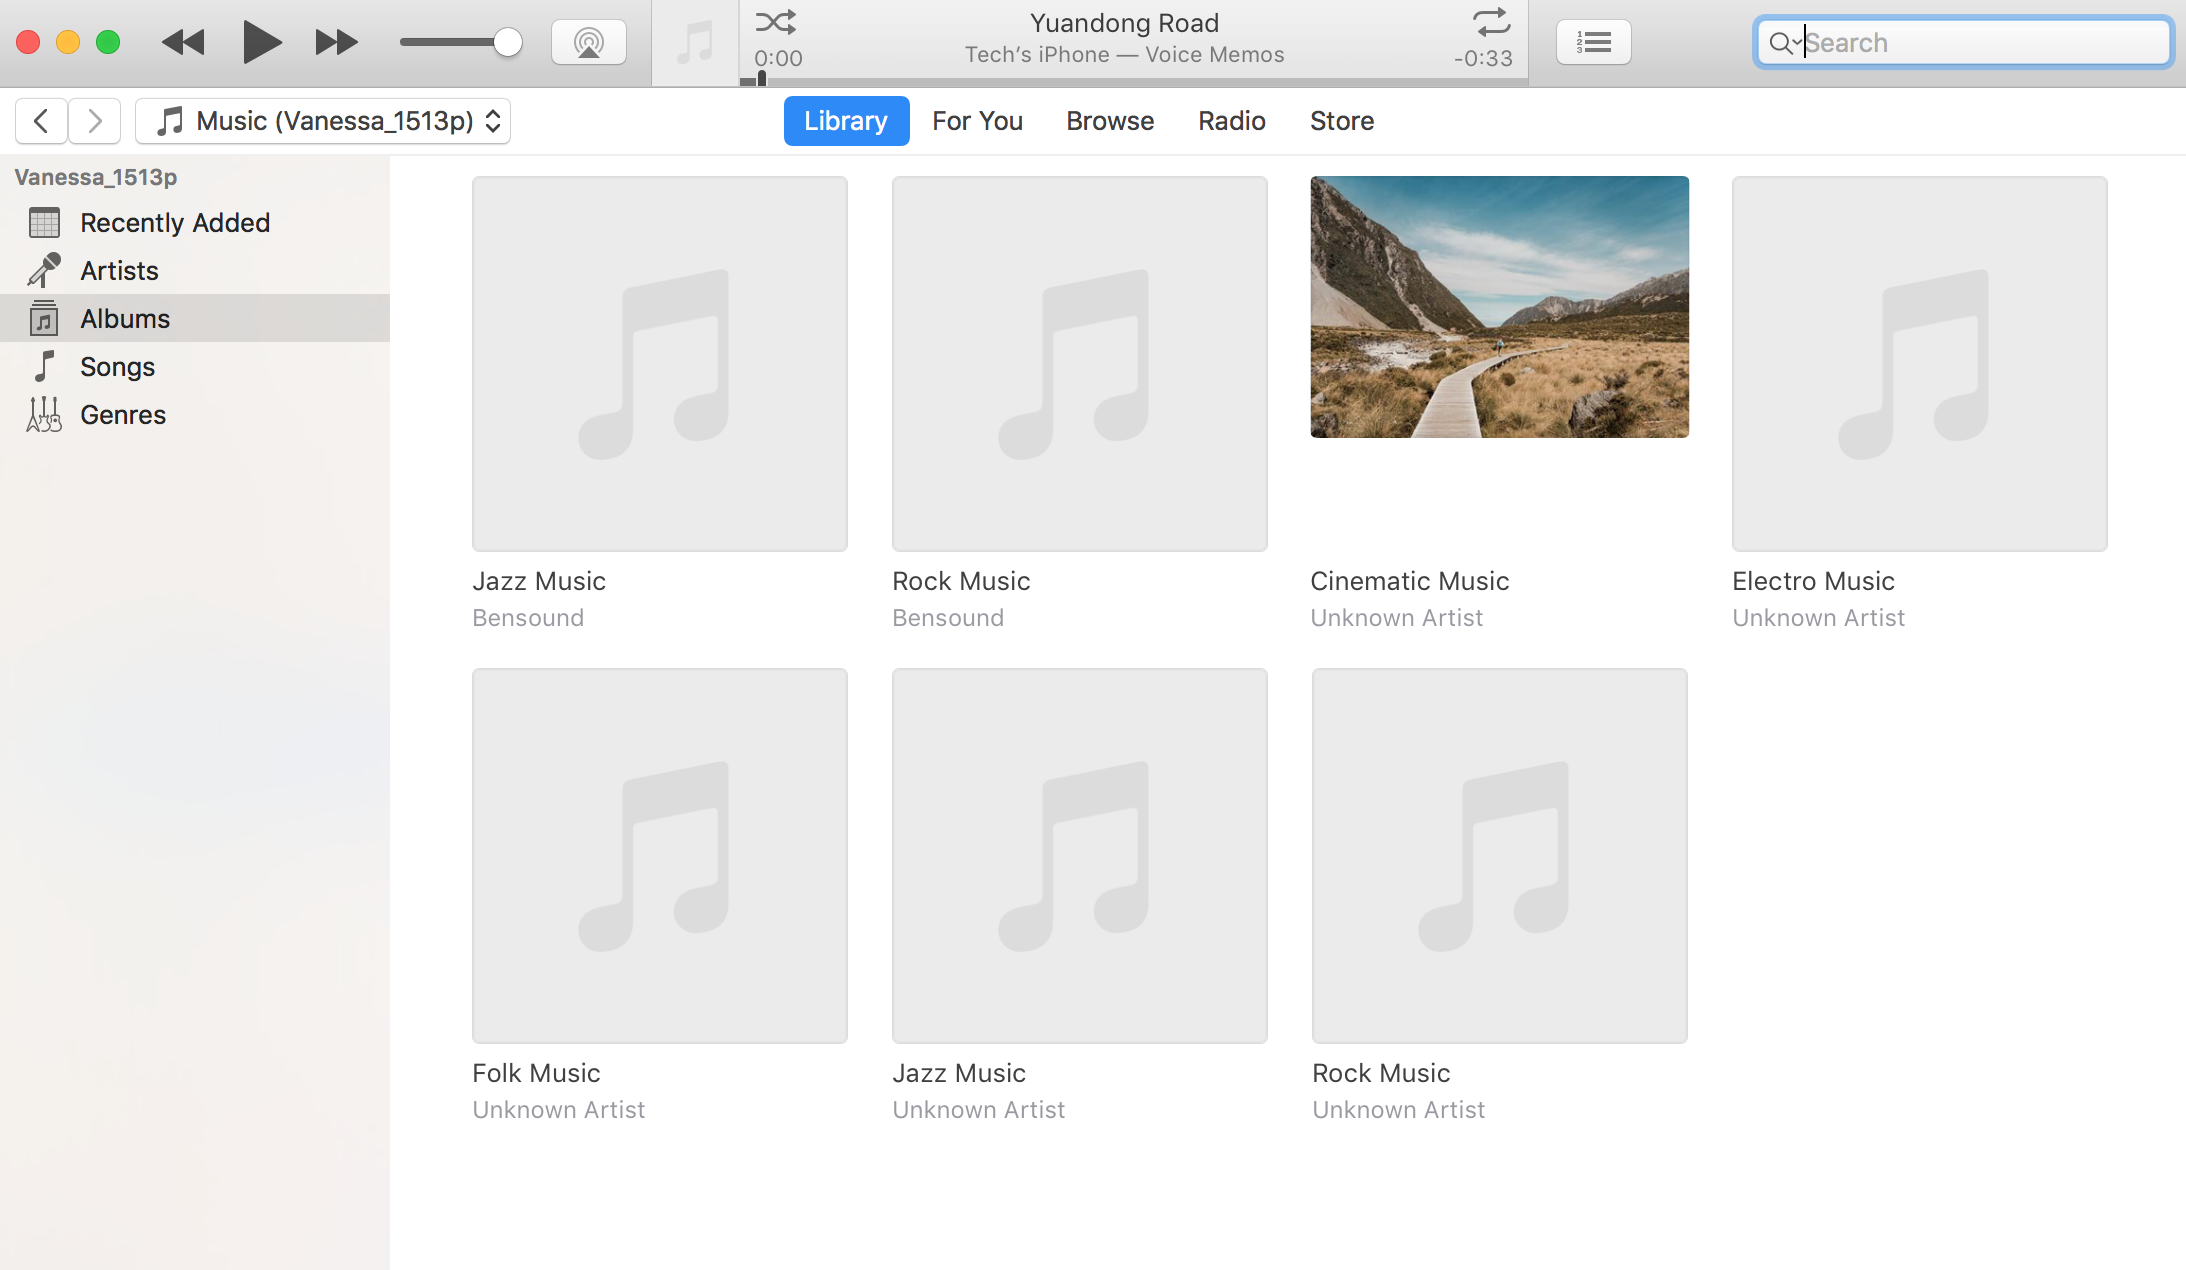 How to enjoy my Synology NAS music on iTunes (Mac